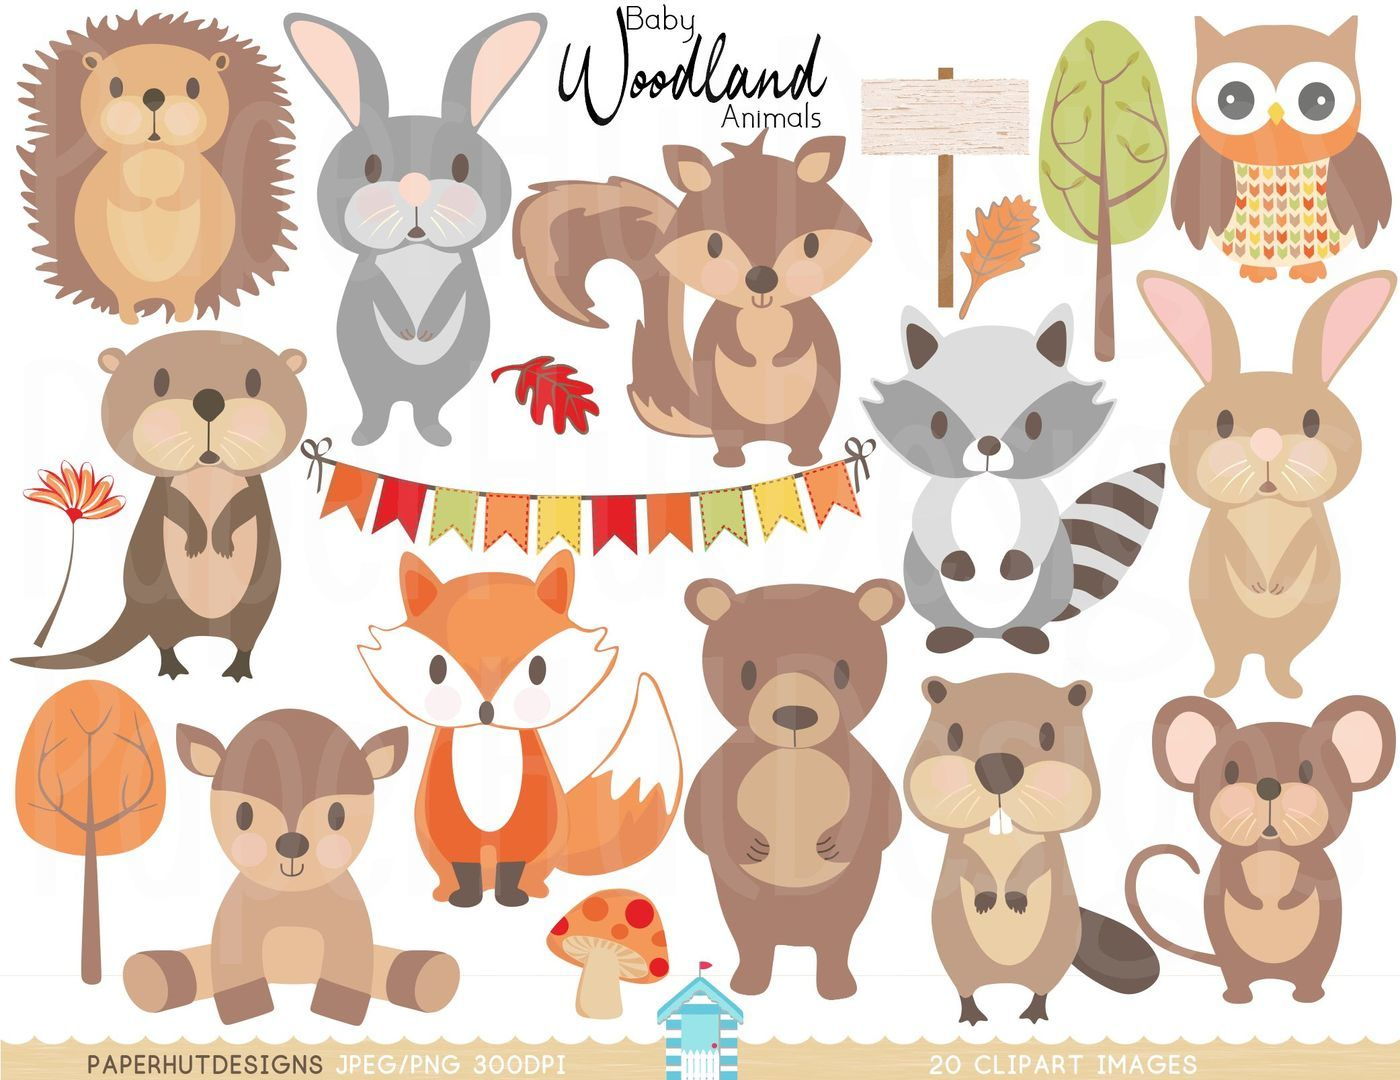 Baby Woodland Animals Clipart By PaperHutDesigns.